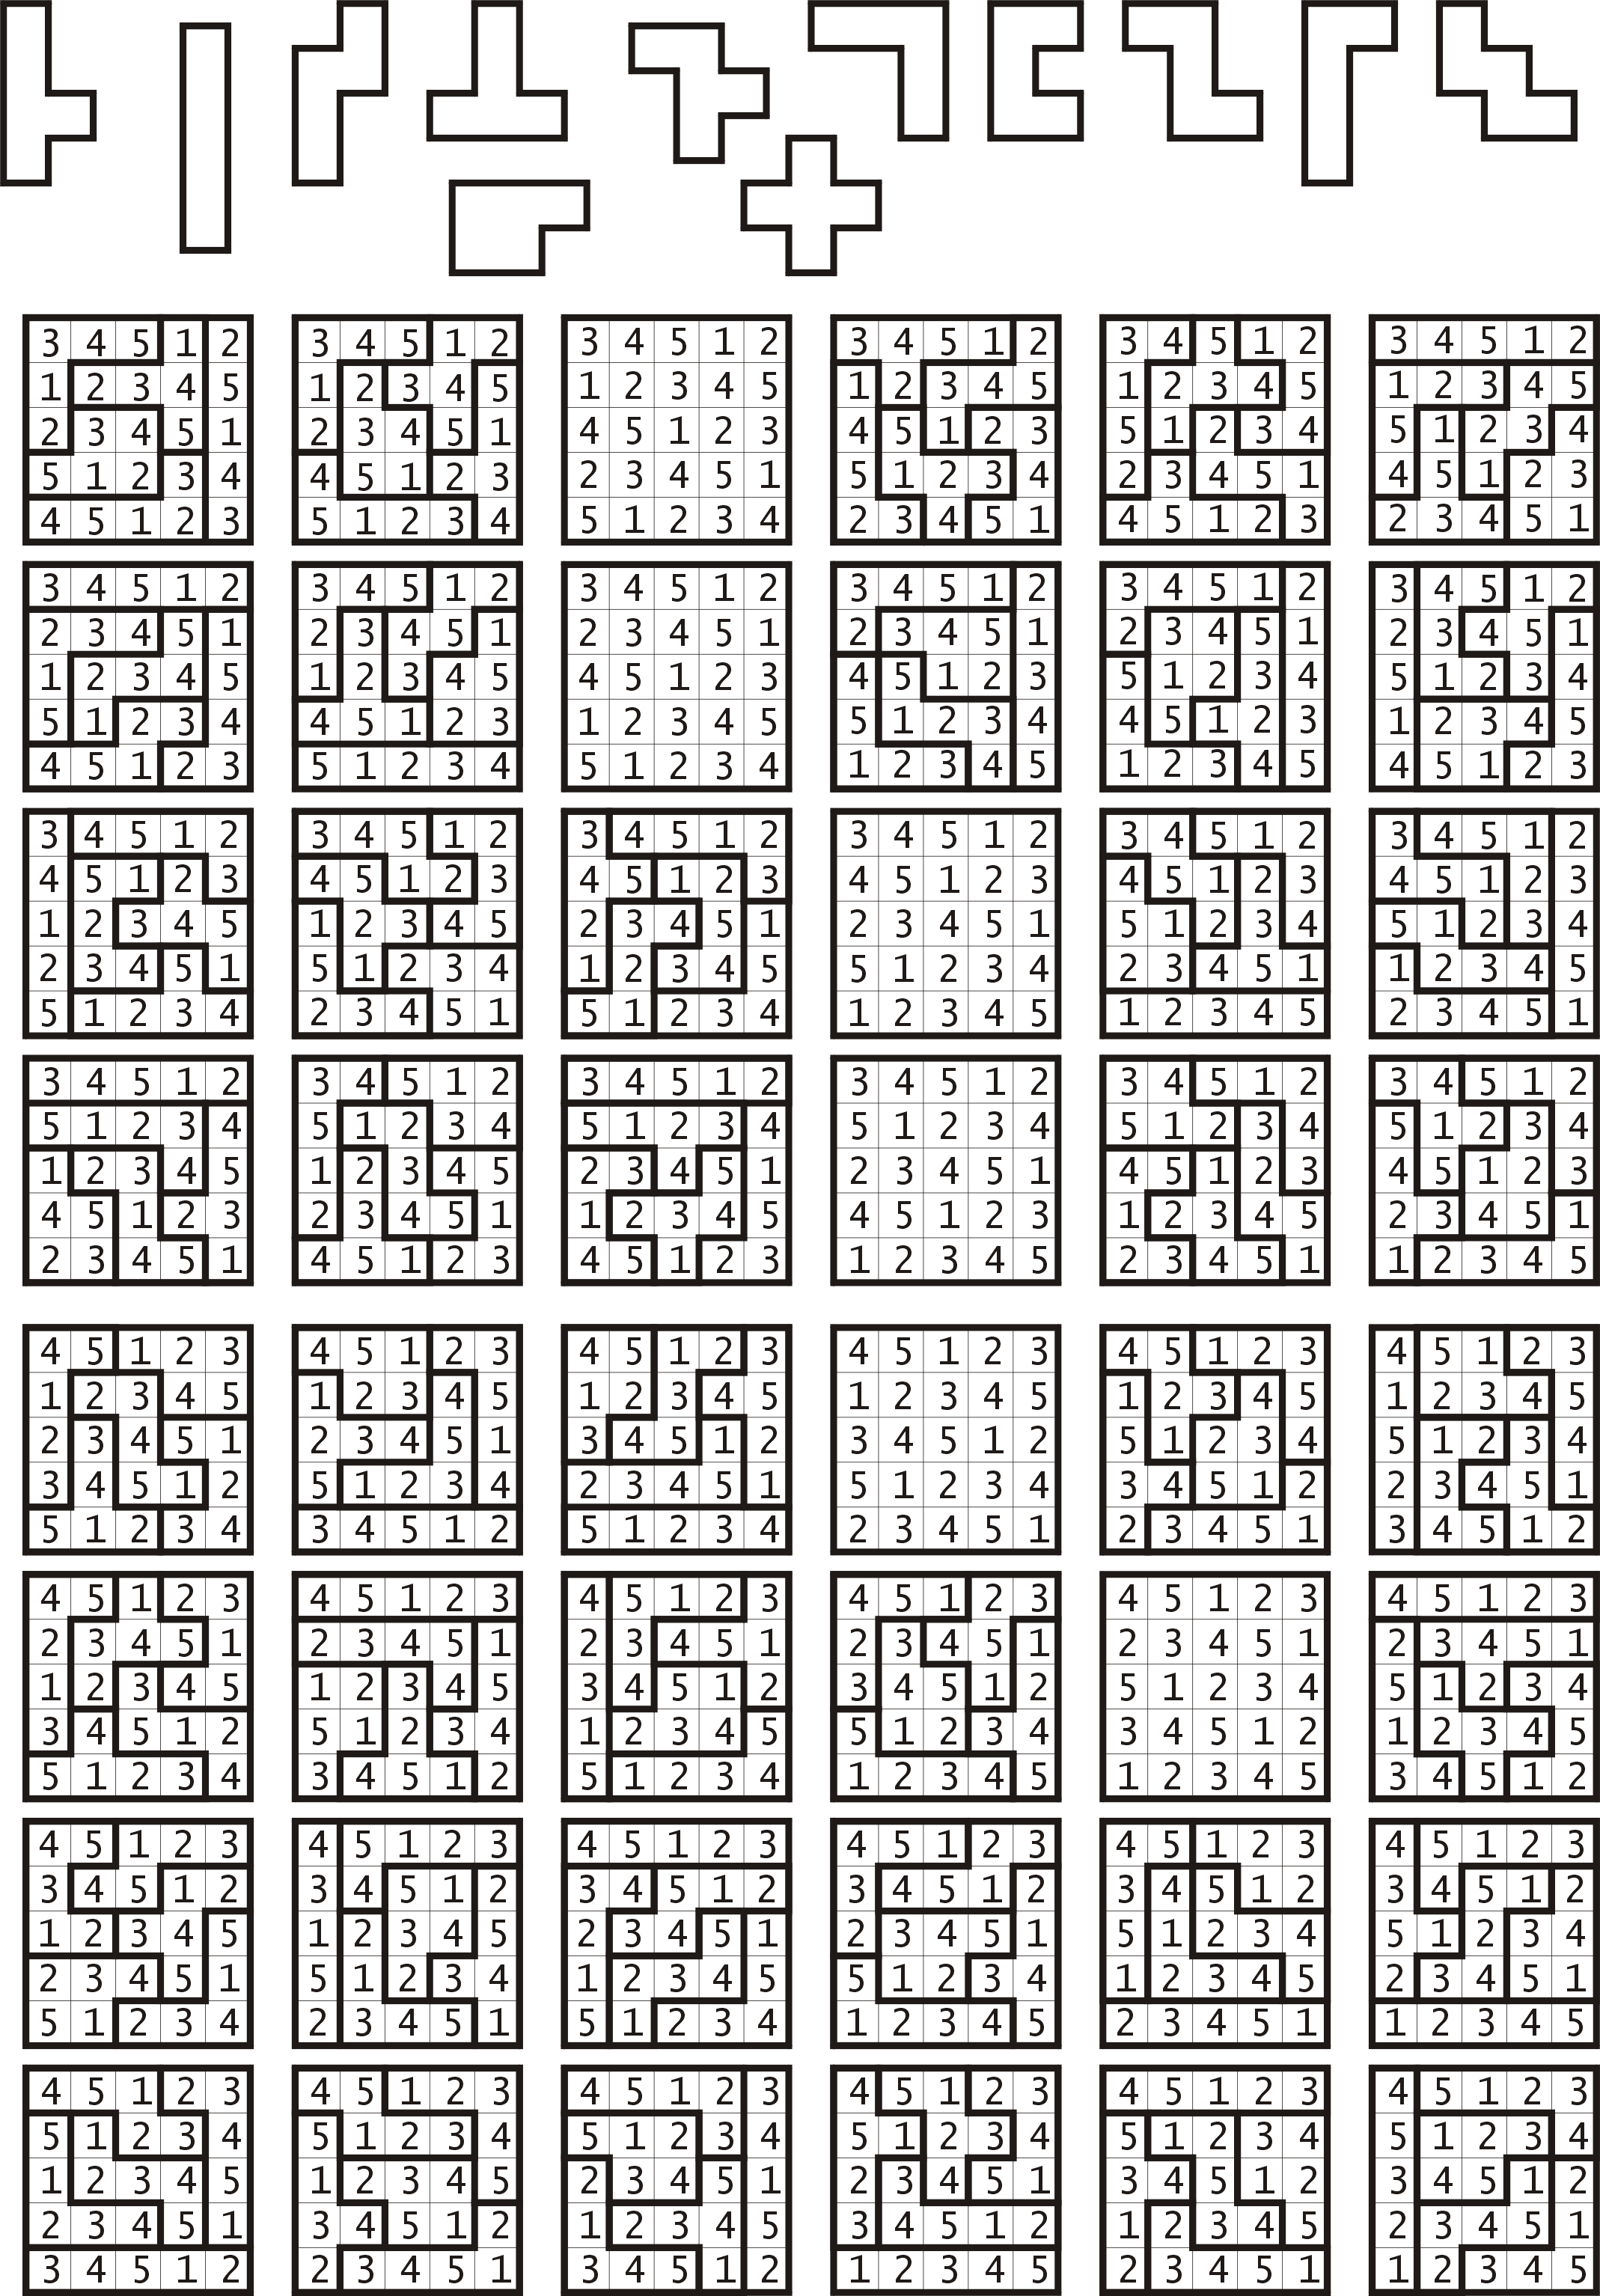 Possible 5x5 grids of numbers 1 to 5 mimicking SUDOKU puzzle layout ...